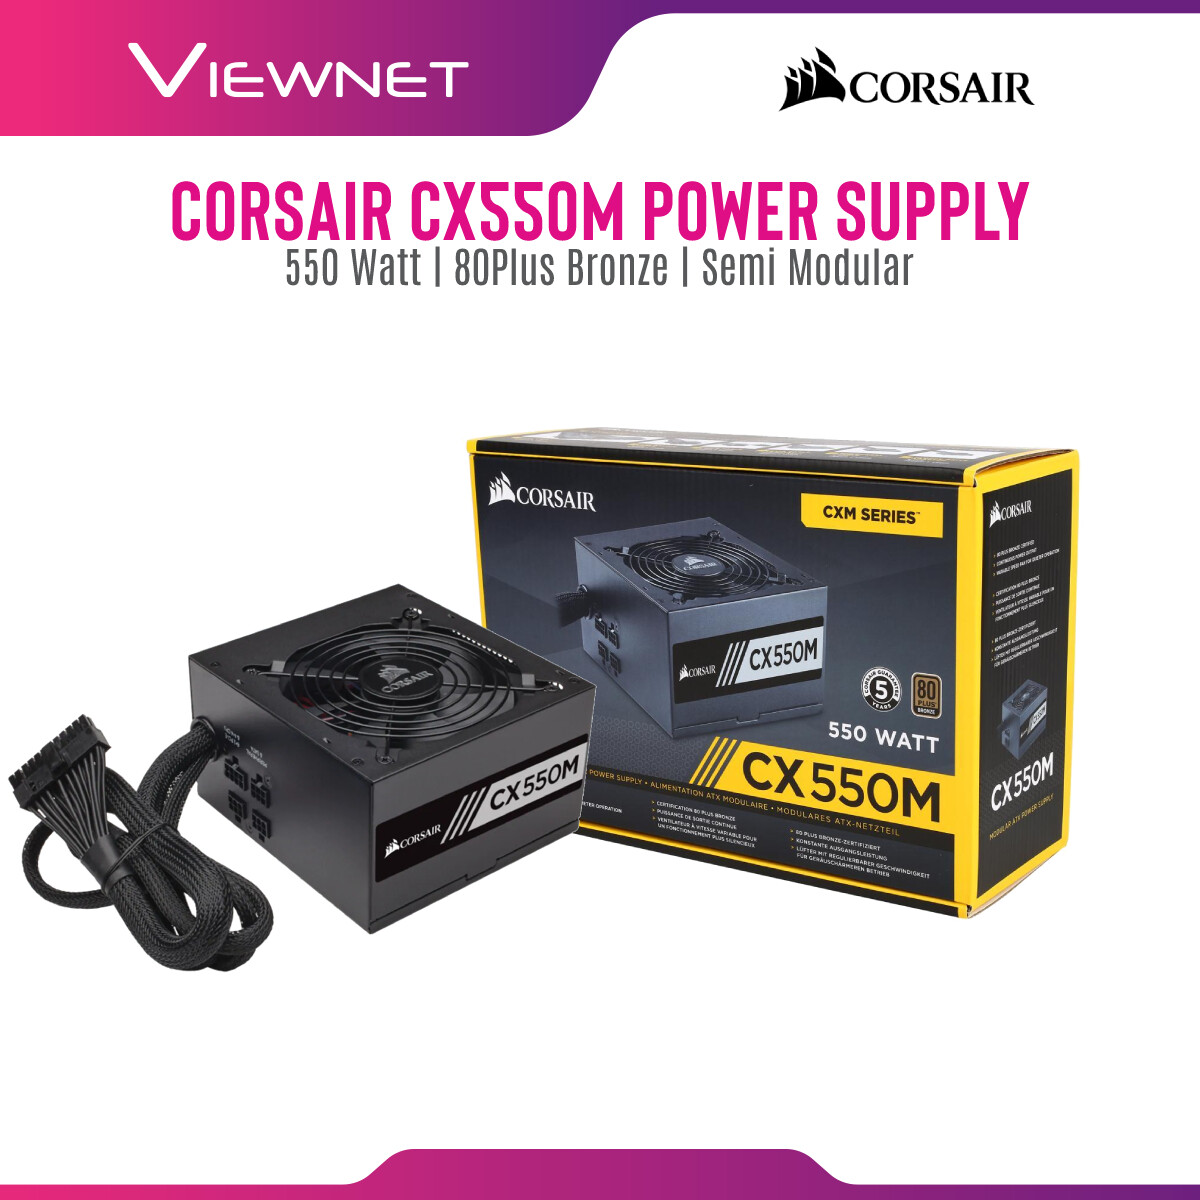 Corsair CX Series™ CX550M Power Supply CP-9020102-UK — 550 Watt 80 PLUS® Bronze Certified Modular ATX PSU